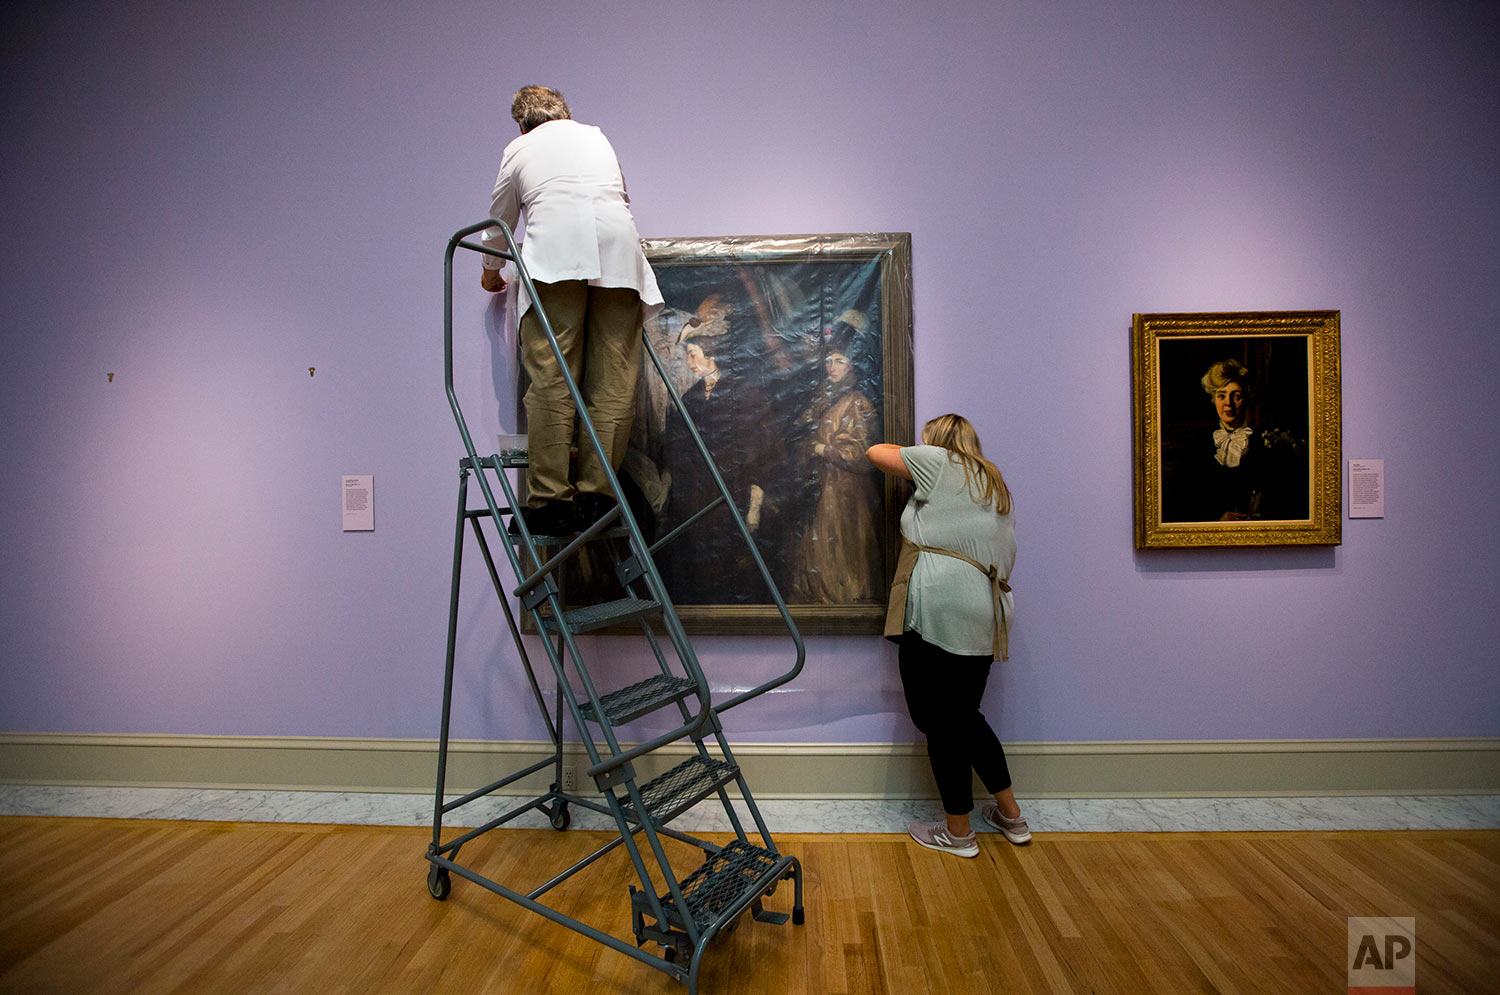 """Mark Lewis, left, conservator, and Alisa Reynolds, associate registrar, secure the painting """"The Shoppers"""" by William James Glackens at the Chrysler Museum of Art on Tuesday, Sept. 11, 2018 in Norfolk, Va. As category 4 Hurricane Florence approaches, staff members pull priceless paintings off the walls near windows and skylights on. Later on, the entrance to the museum will be sandbagged. (The' N. Pham/The Virginian-Pilot via AP)"""